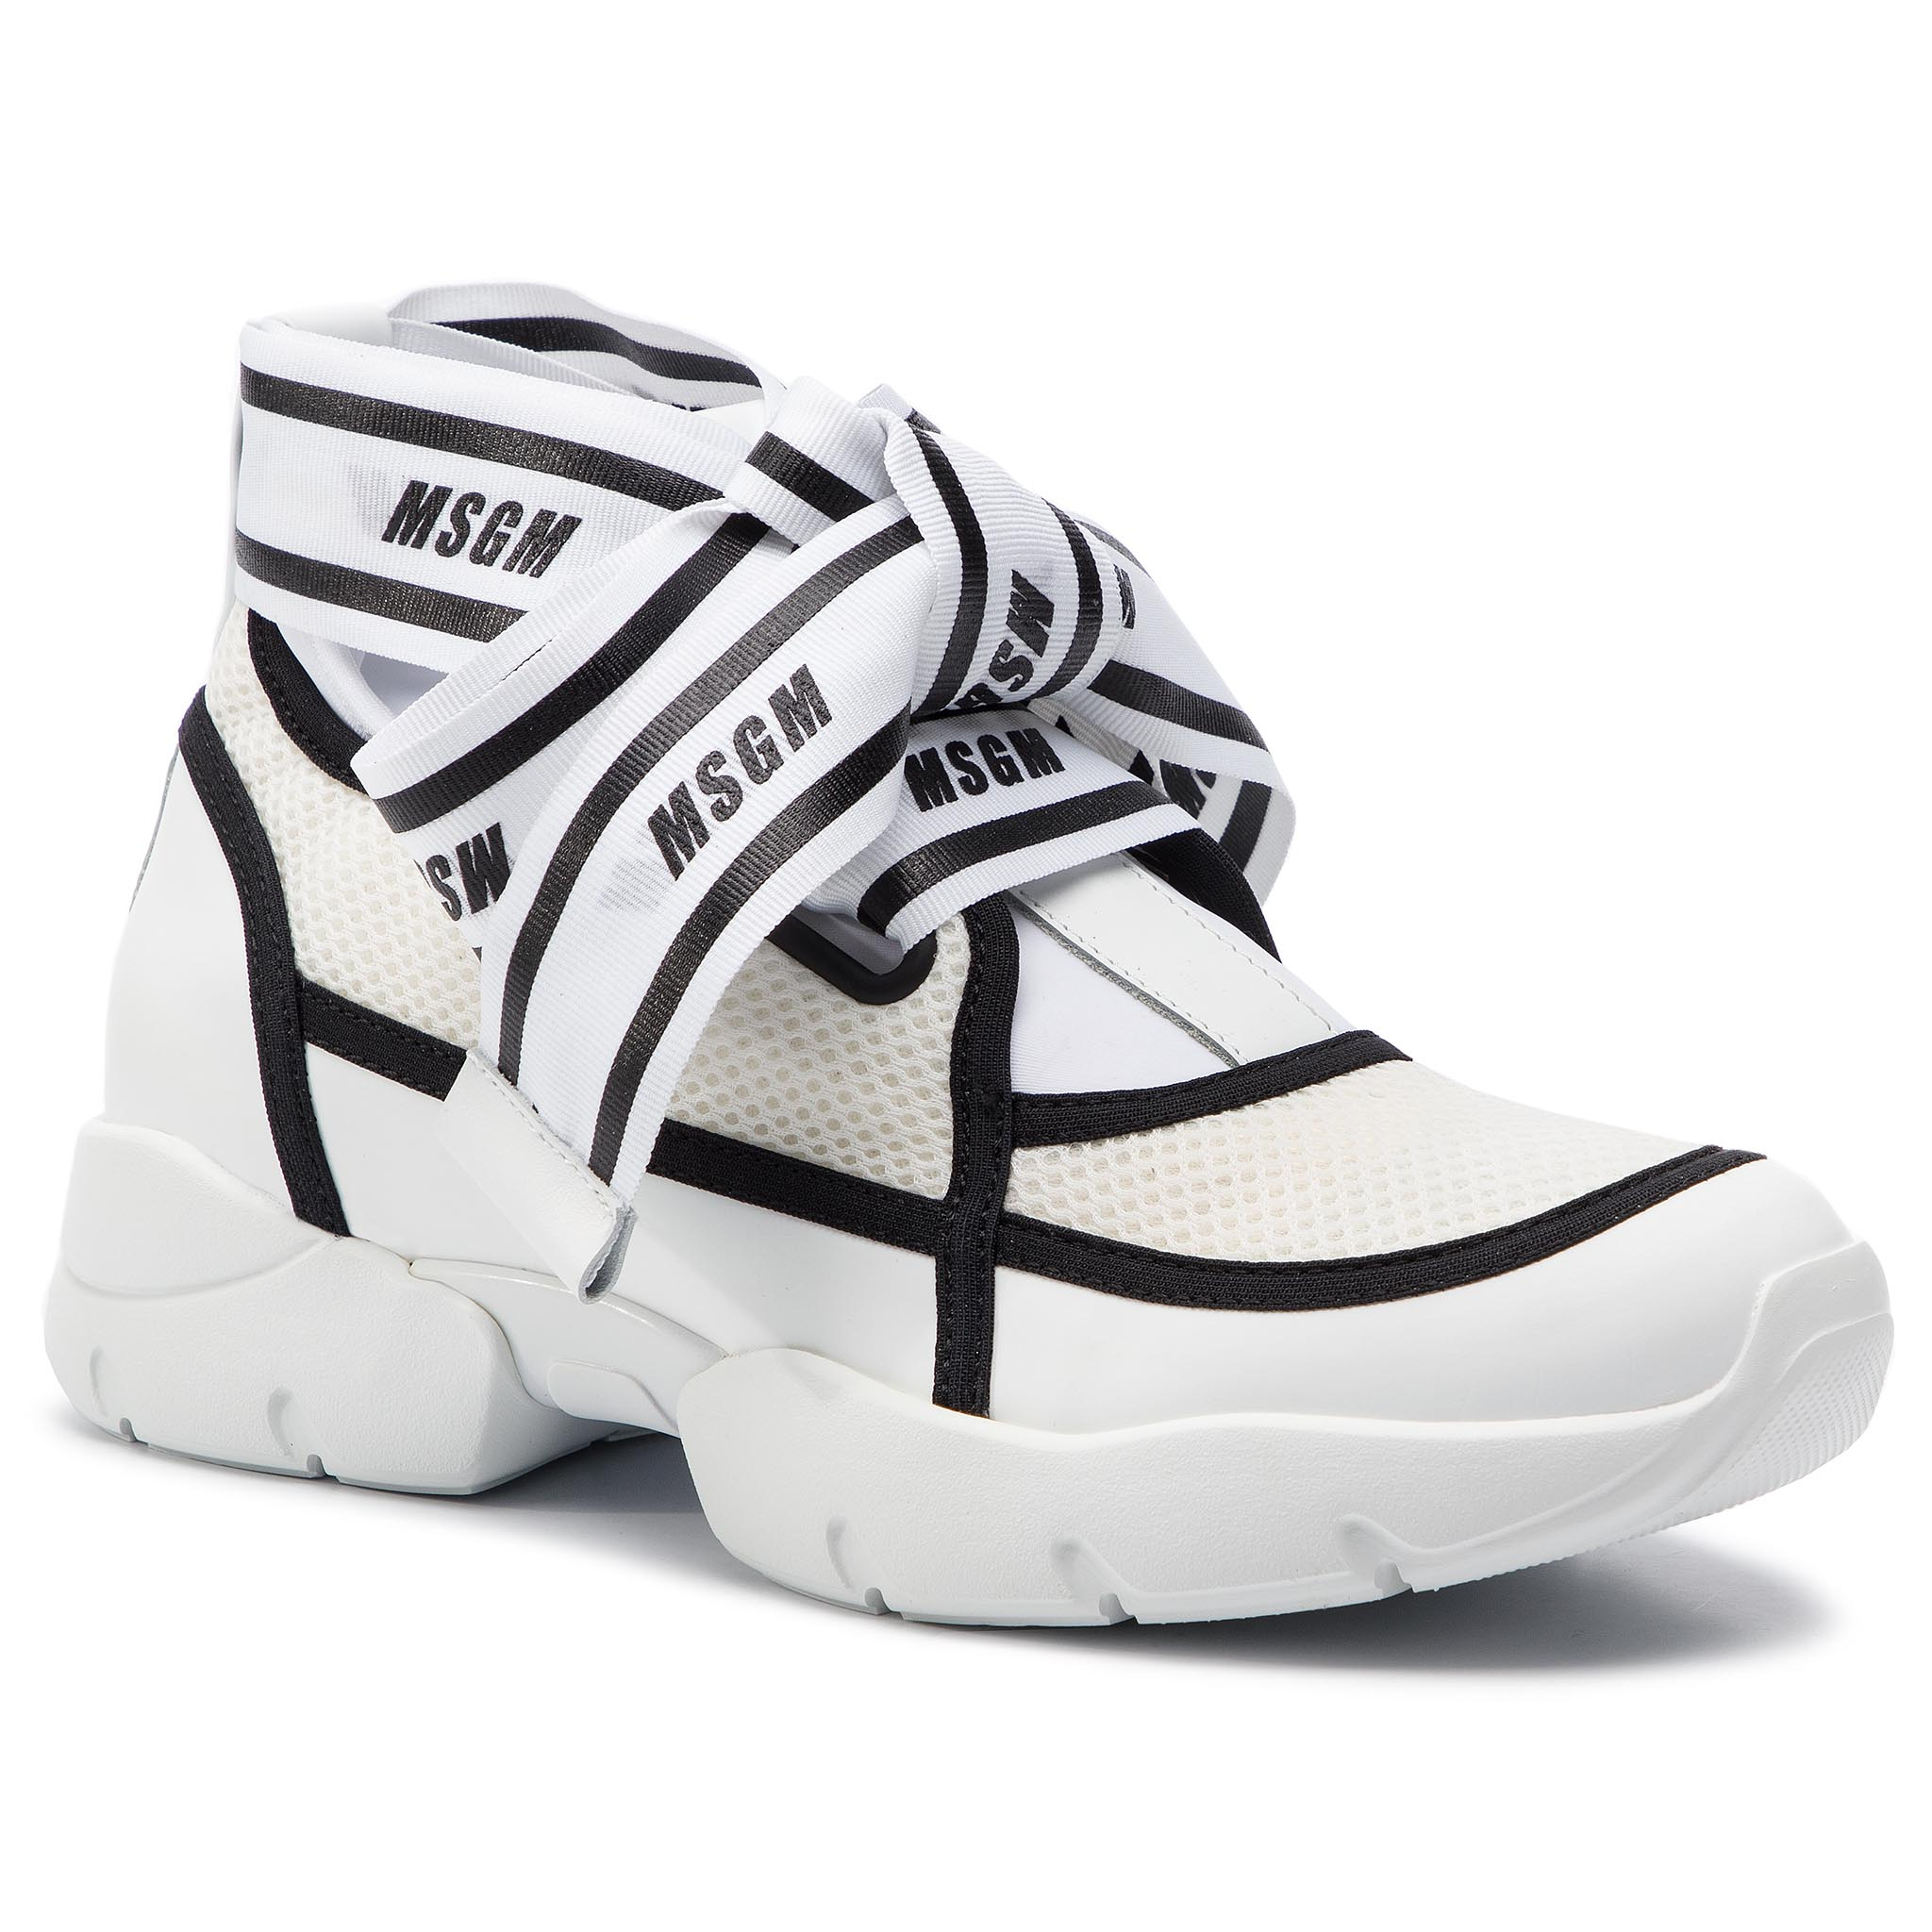 Sneakers MSGM - Bow Running 2641MDS419 205 1 Blanc